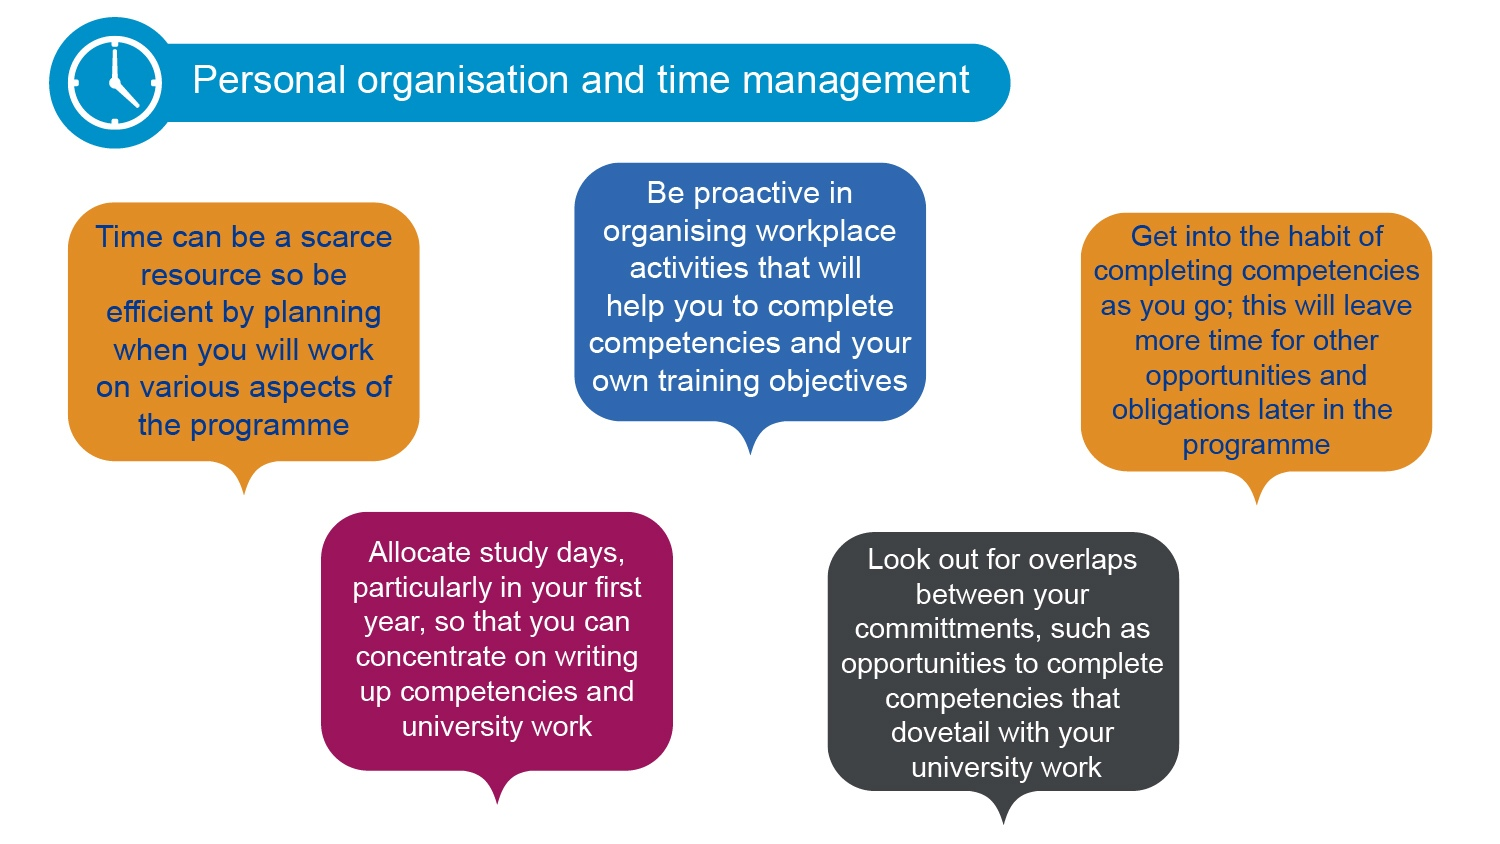 Image showing quotes from trainees regards organisation and time management